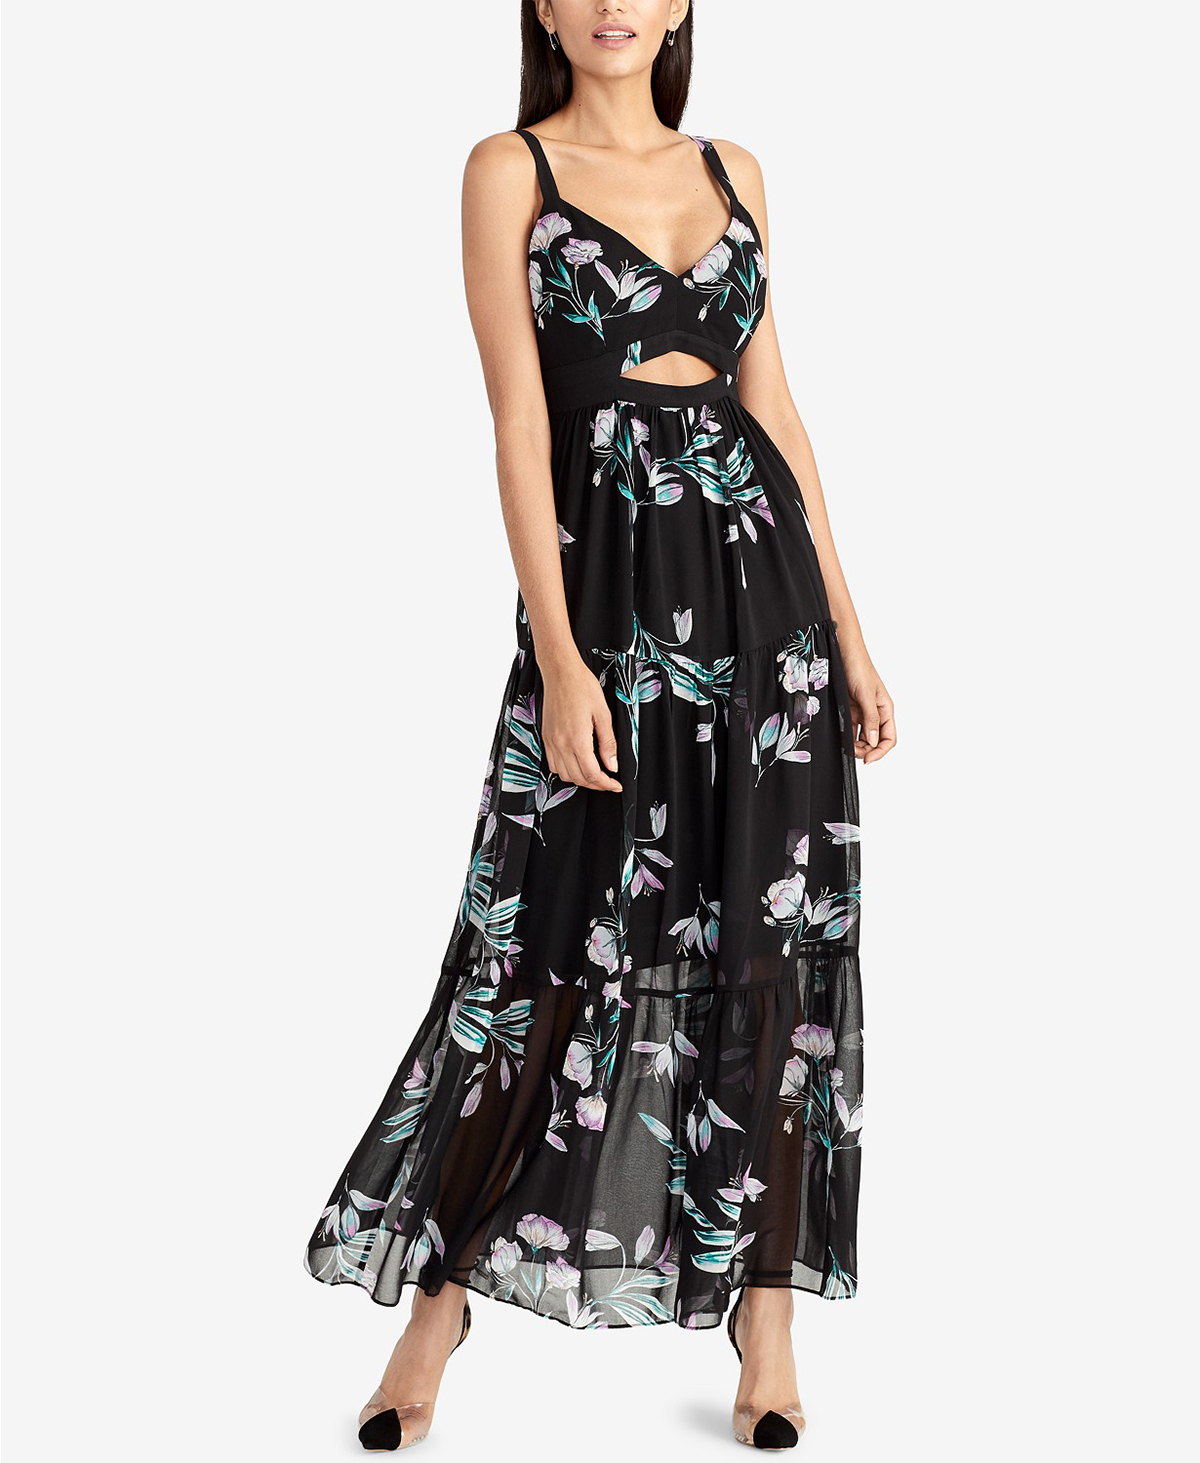 d1cb269bf4b0b These 5 Rachel Roy Dresses Prove Florals for Spring Are Groundbreaking